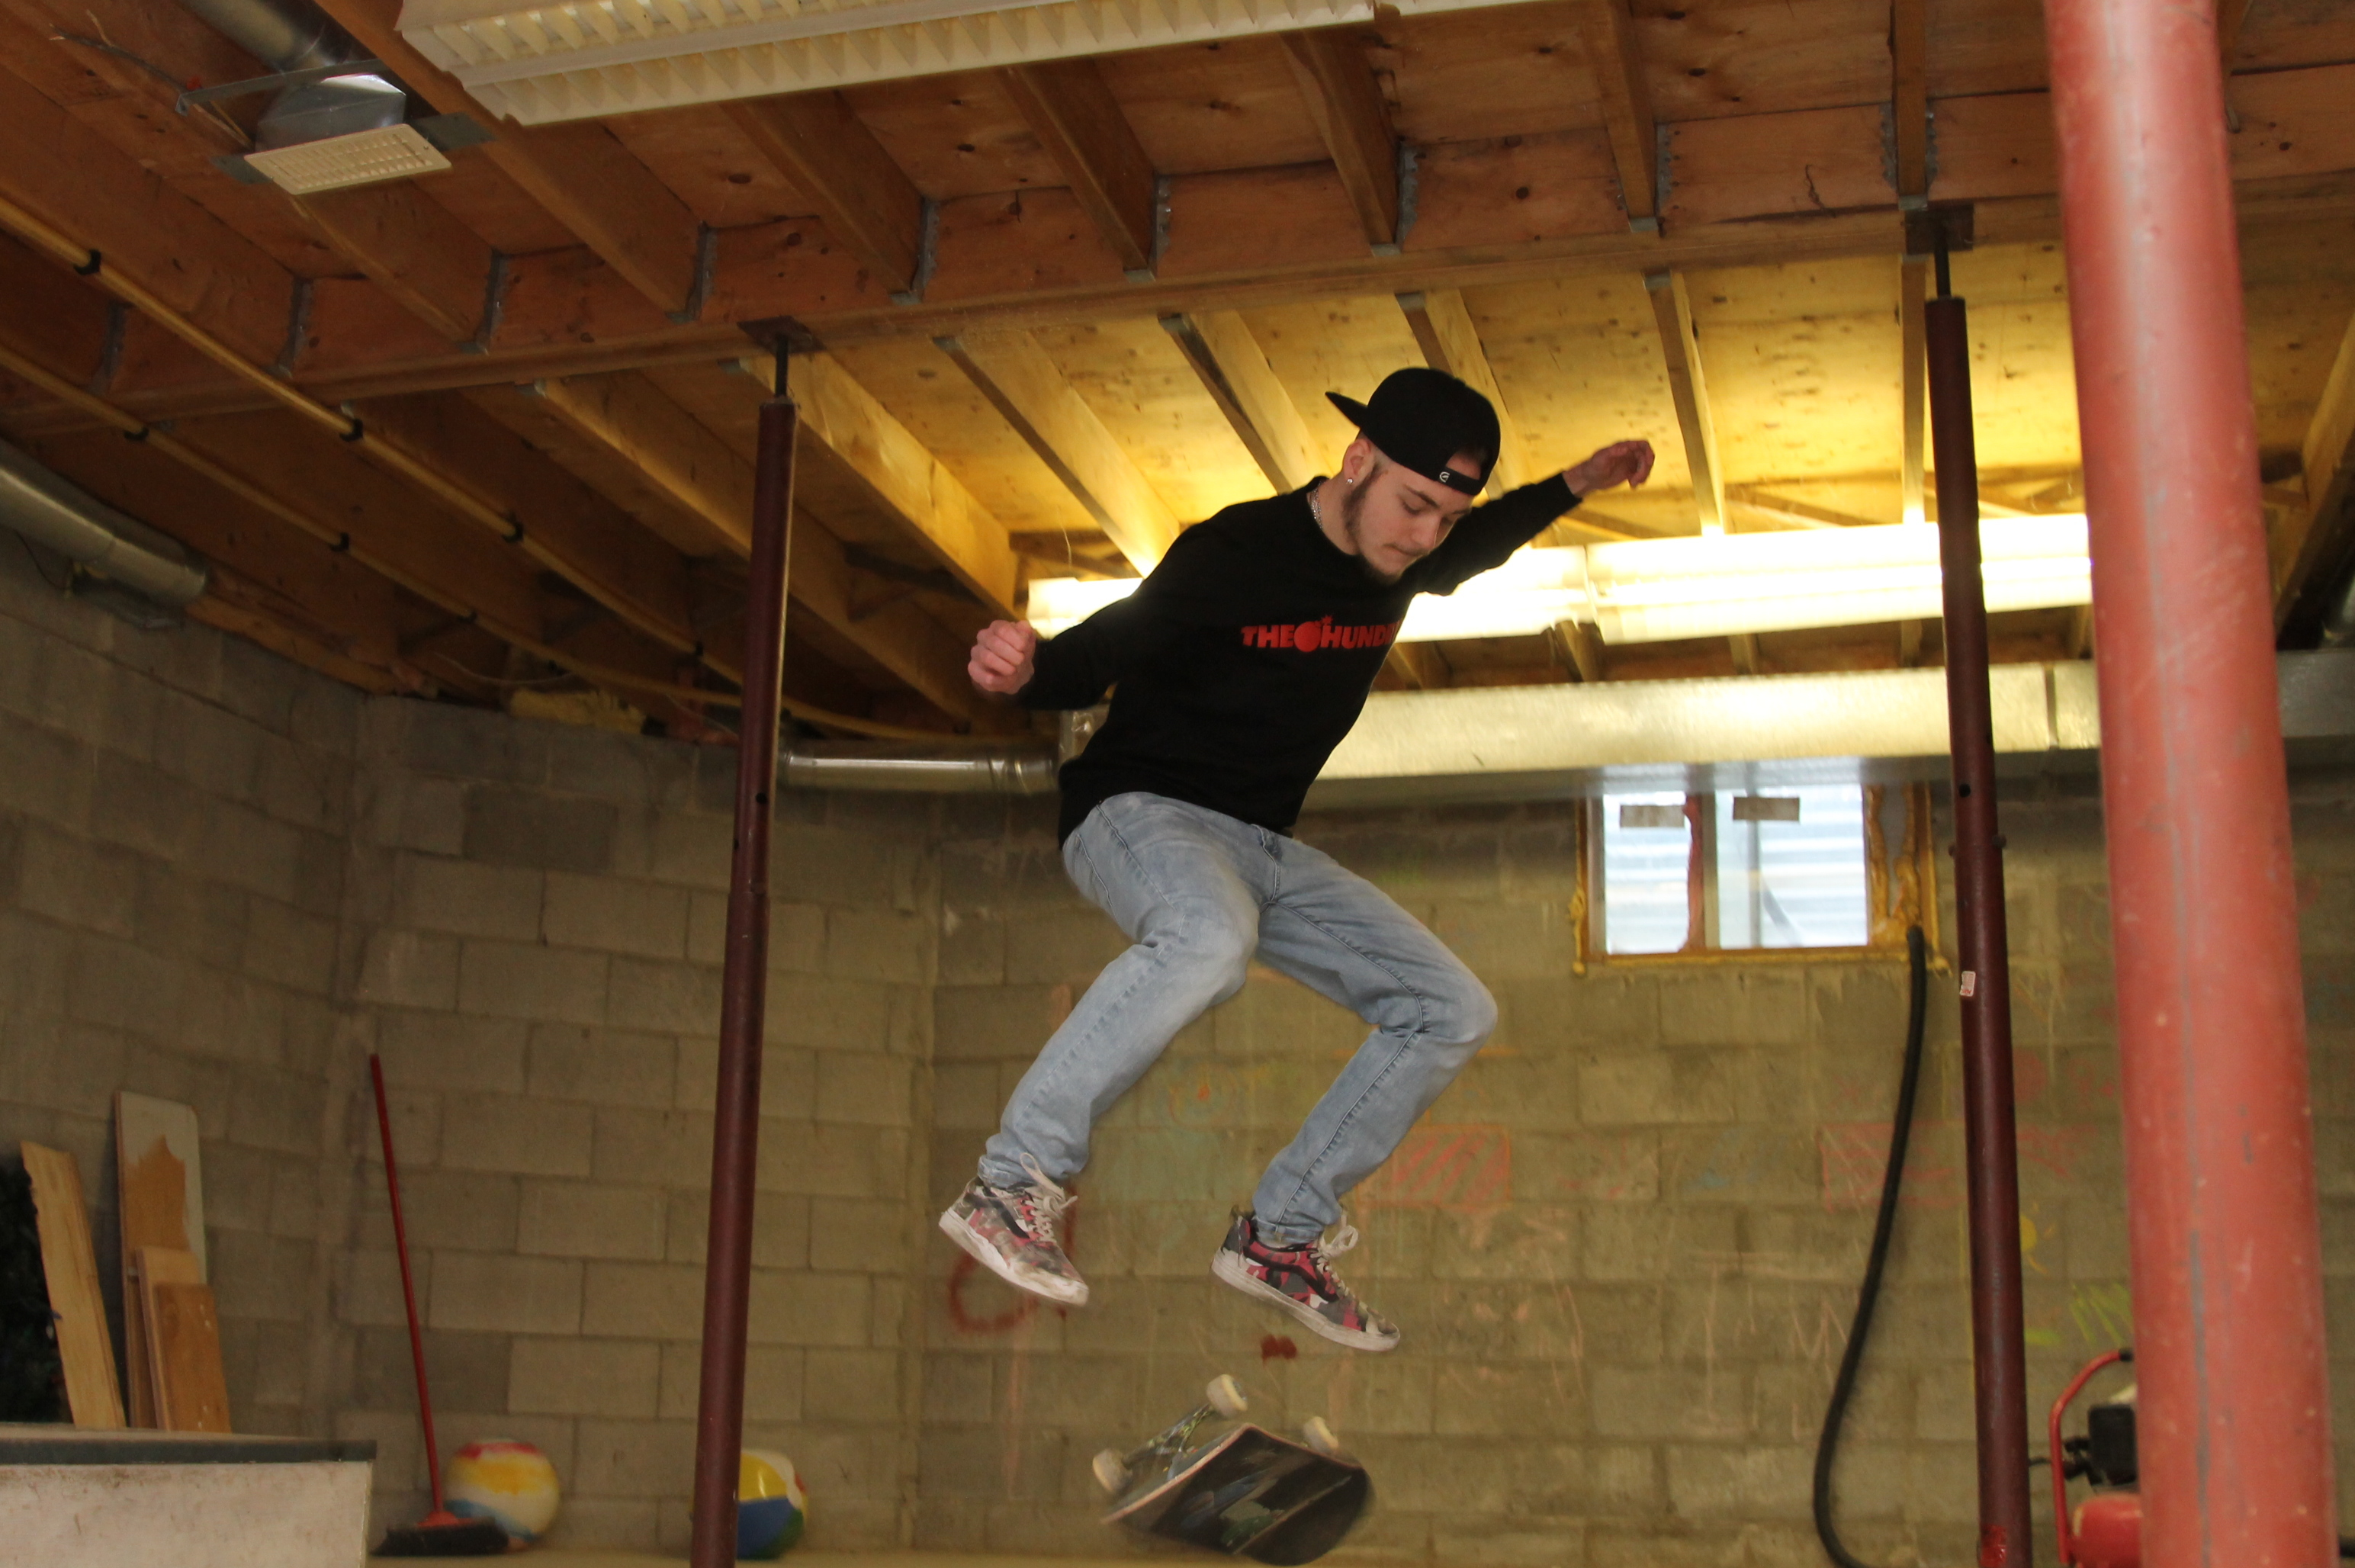 Skateboarding is a huge part of Kian's life and he's set up a skate park in his basement. (Stu Mills/CBC)